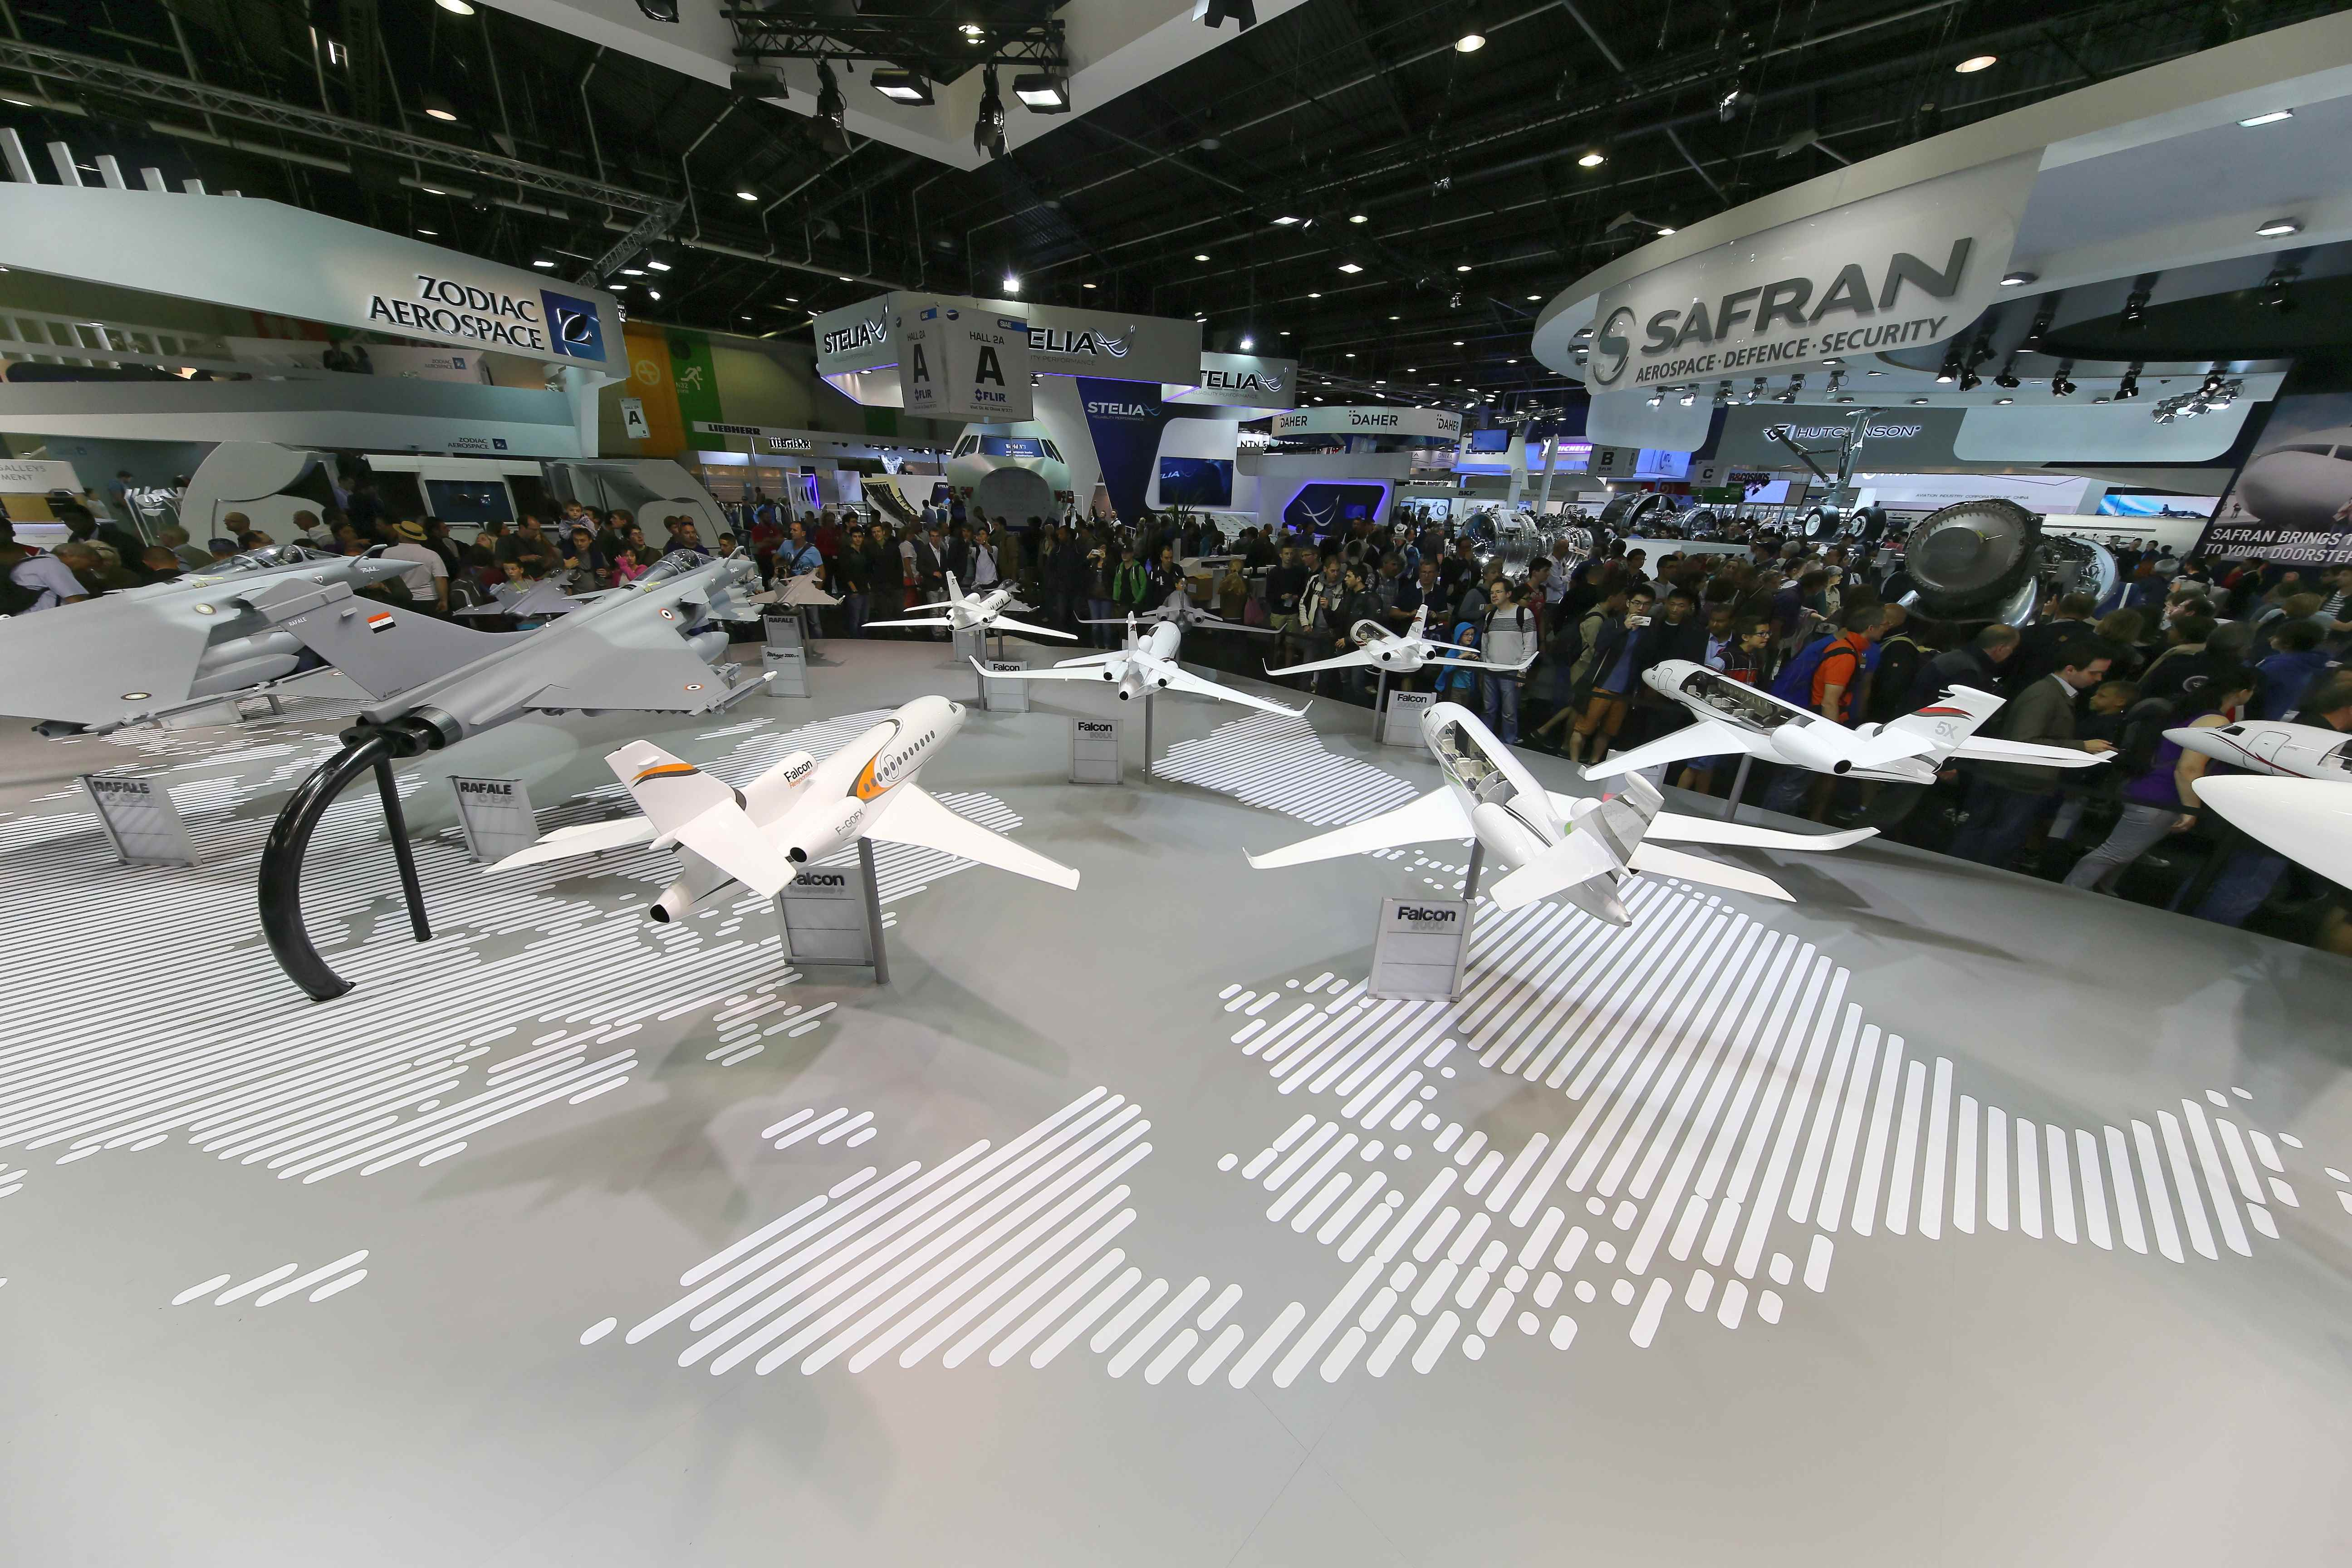 Le salon du bourget une vitrine de l industrie a ronautique - Salon aeronautique du bourget 2015 ...